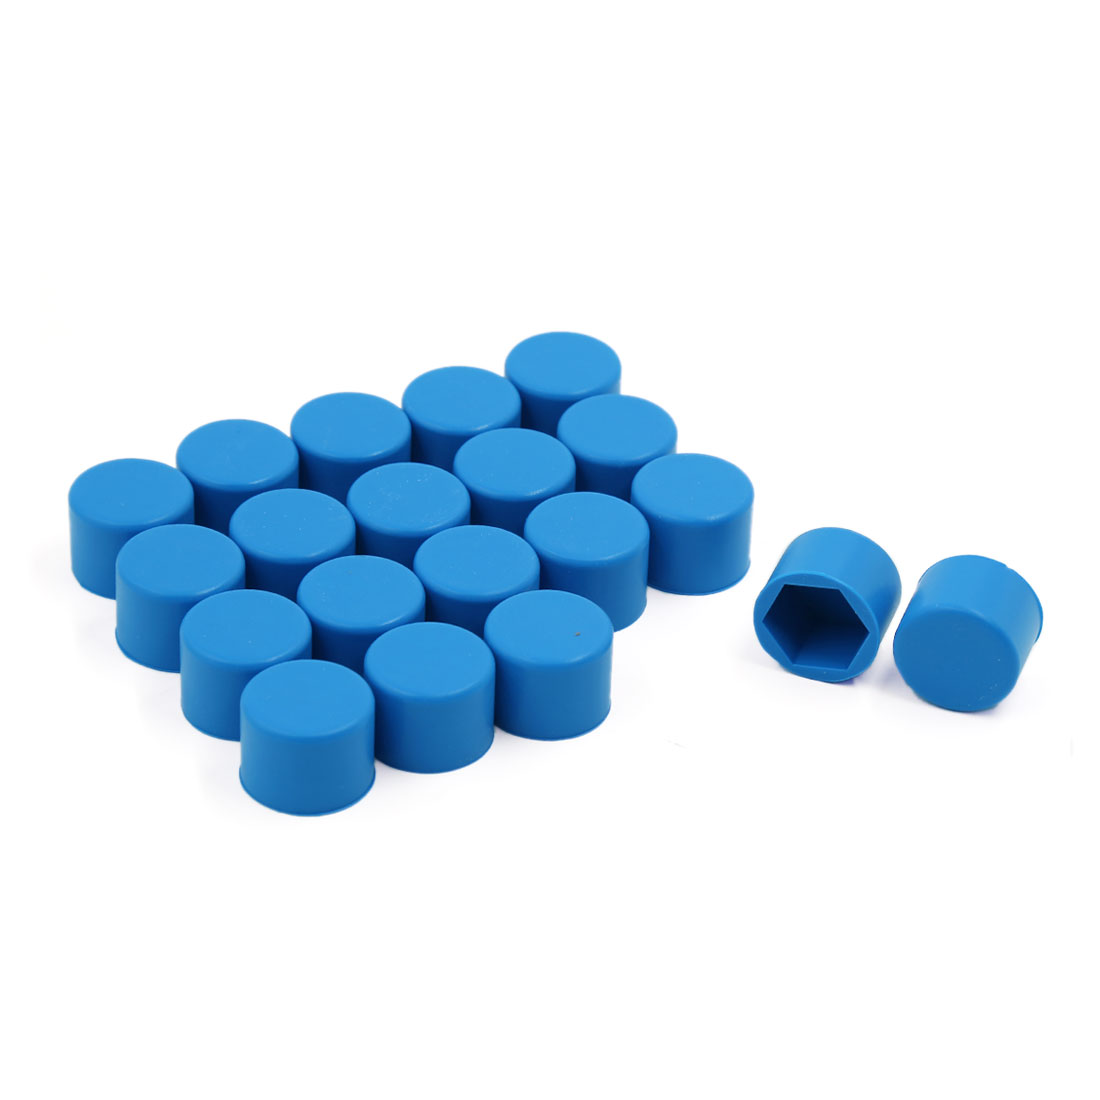 20 Pcs Blue Car Wheel Hex Nuts Bolts Hub Screw Covers Caps Protector 21mm